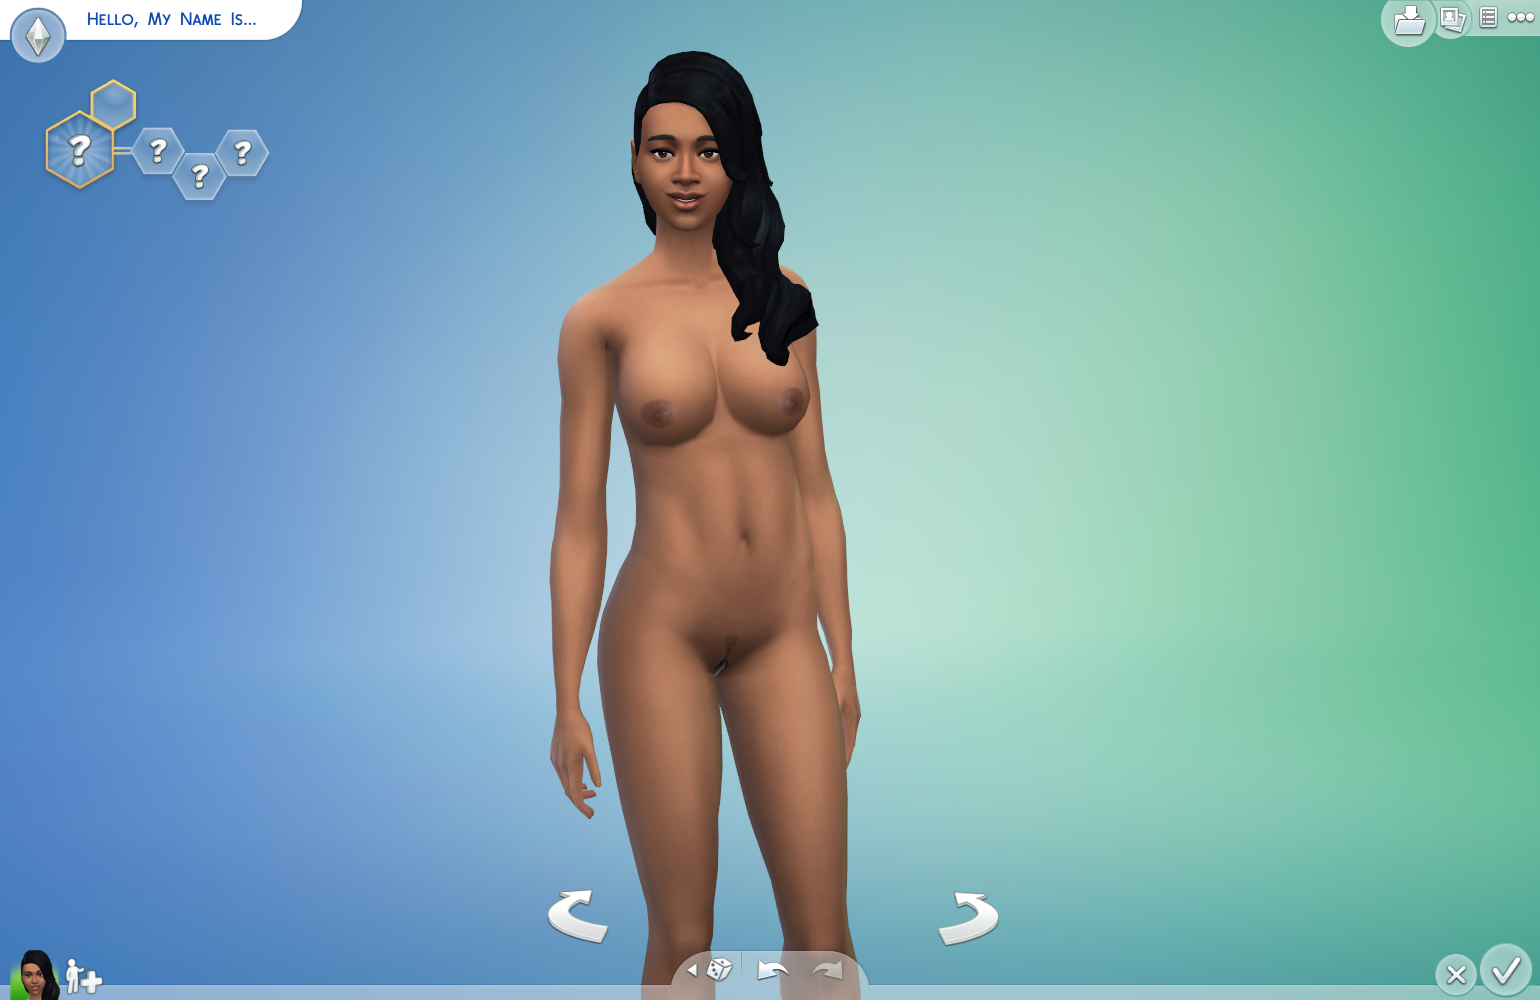 The sims 4 nudes hairy pron video